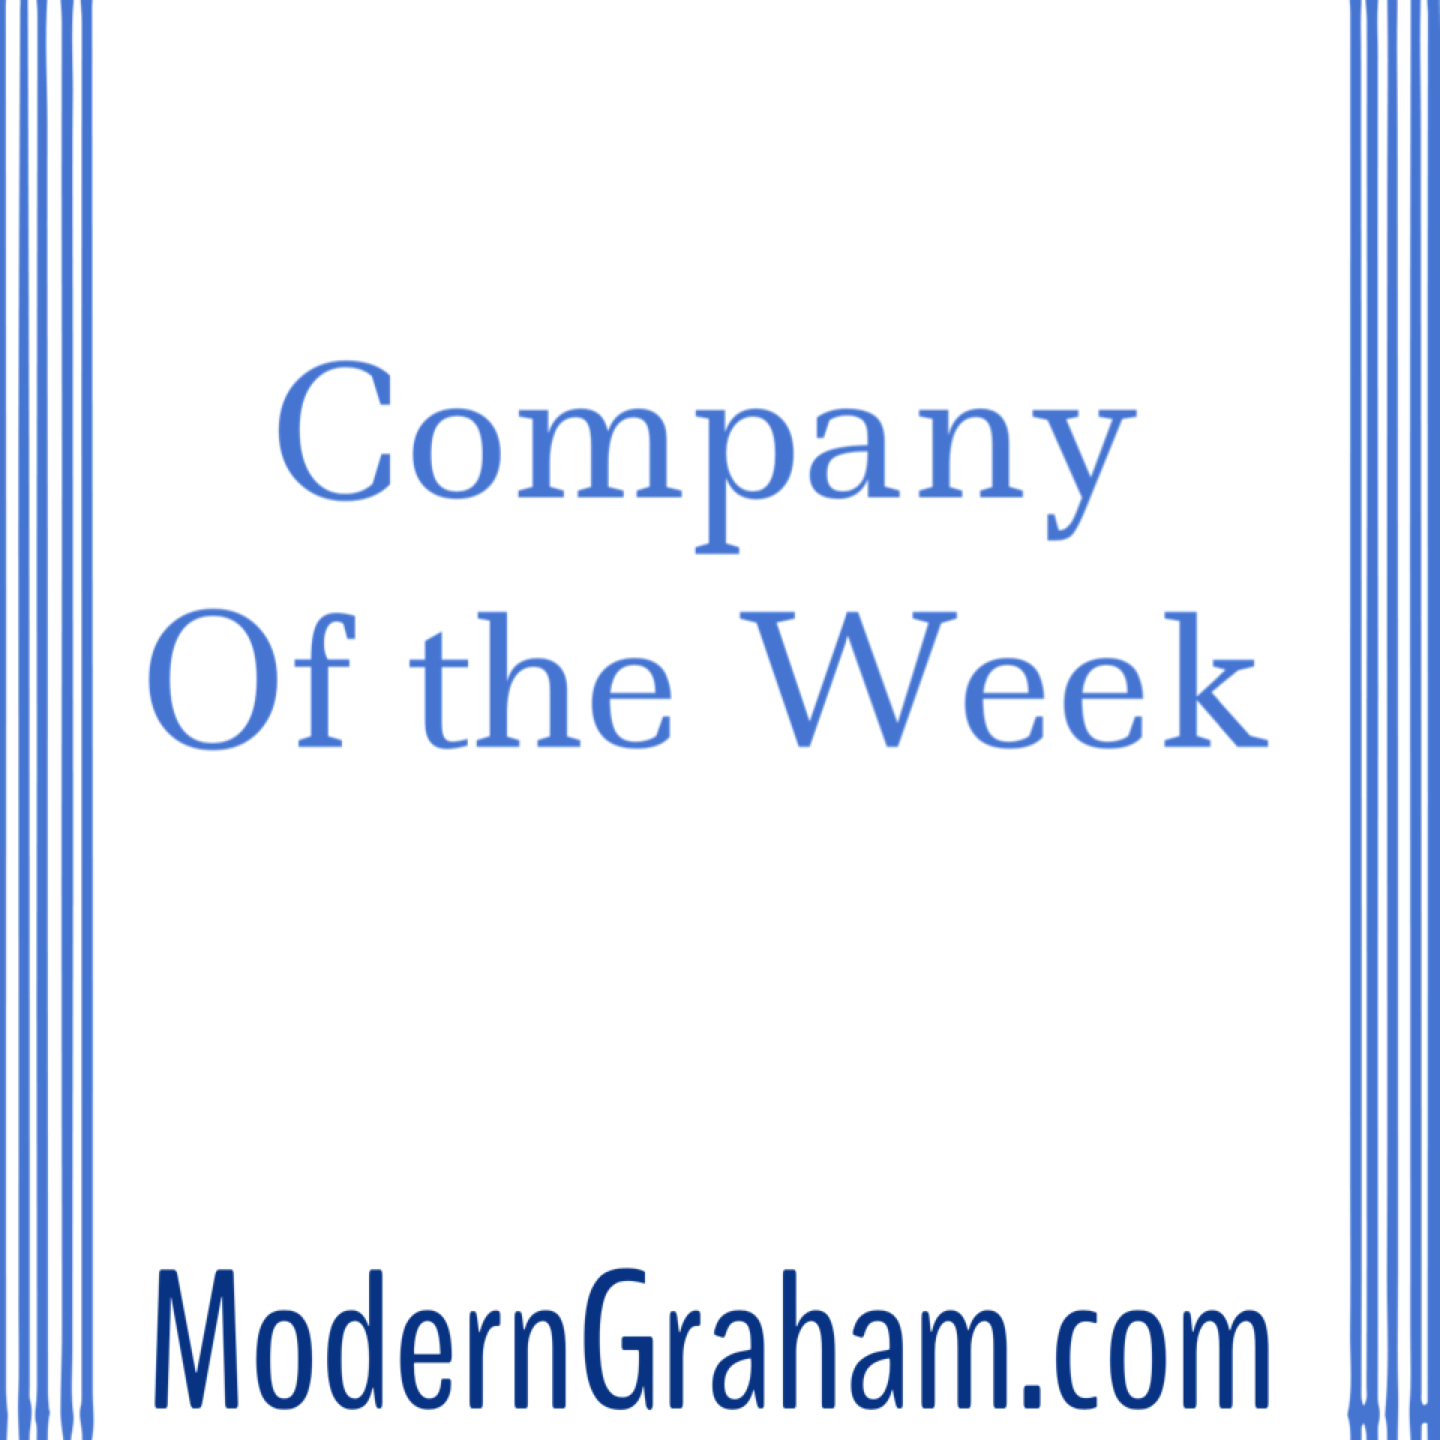 Company of the Week: Capital One Financial (COF)